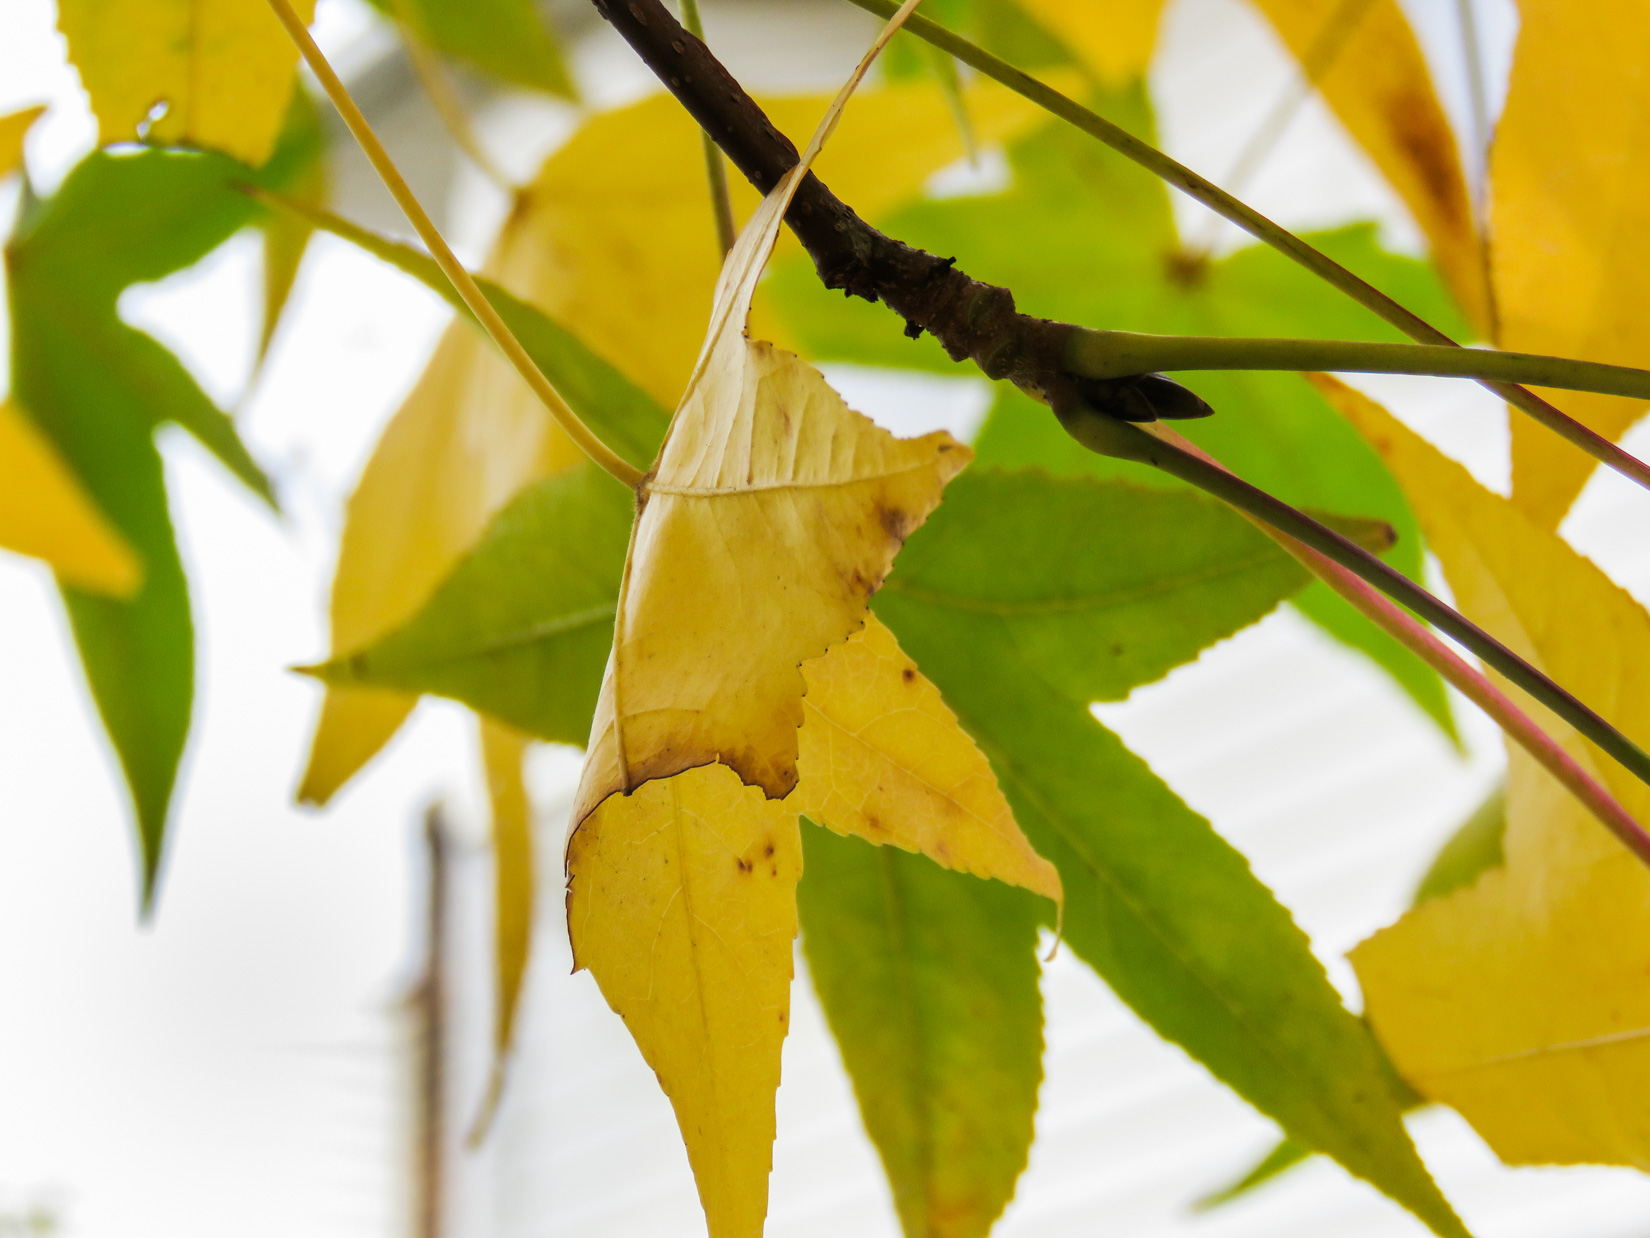 Leaves on Tree Branch